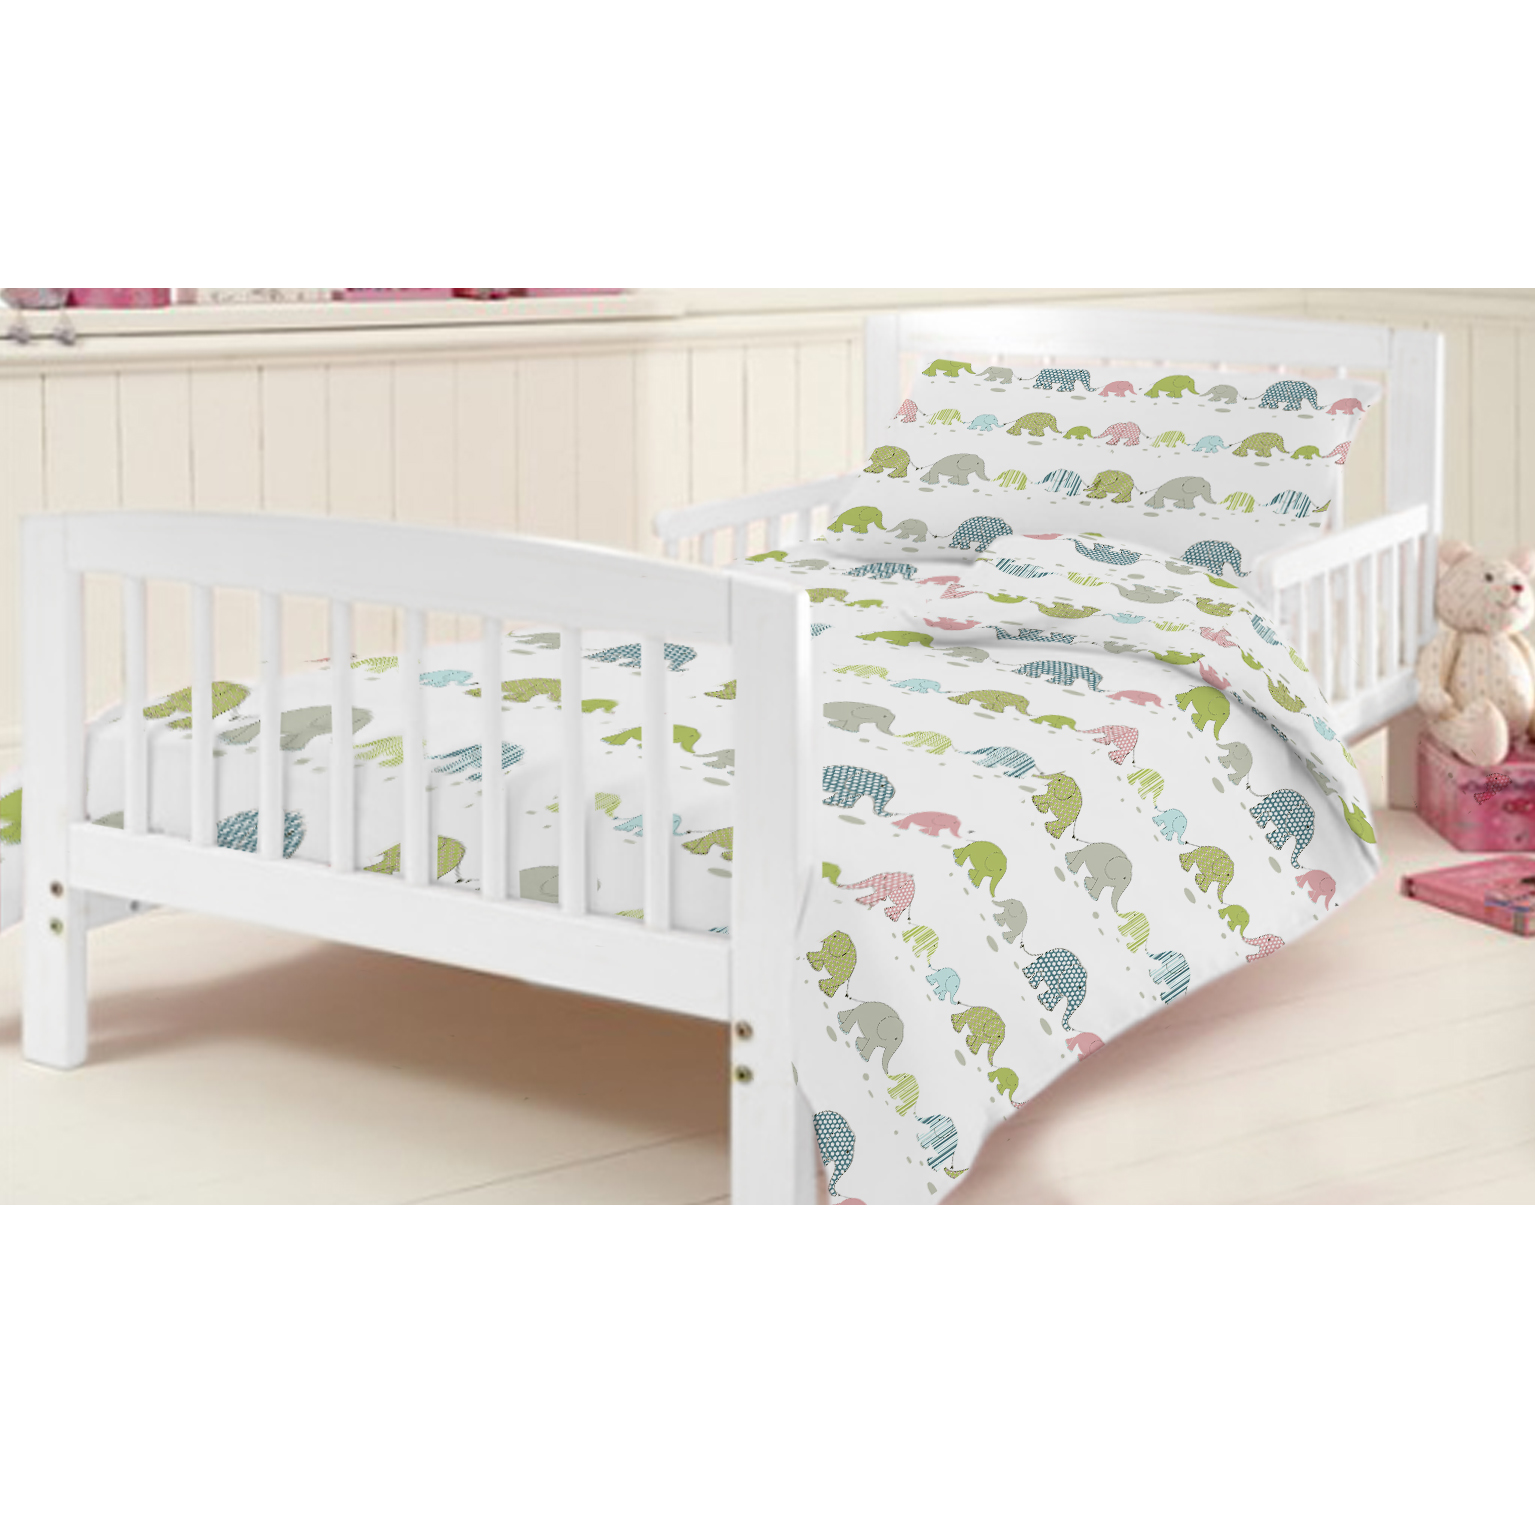 Cot Bedding and Baby Bedding. Whether you're looking for cot bedding, cot bumpers, Moses basket bedding or super soft blankets, our great-value range provides everything you .